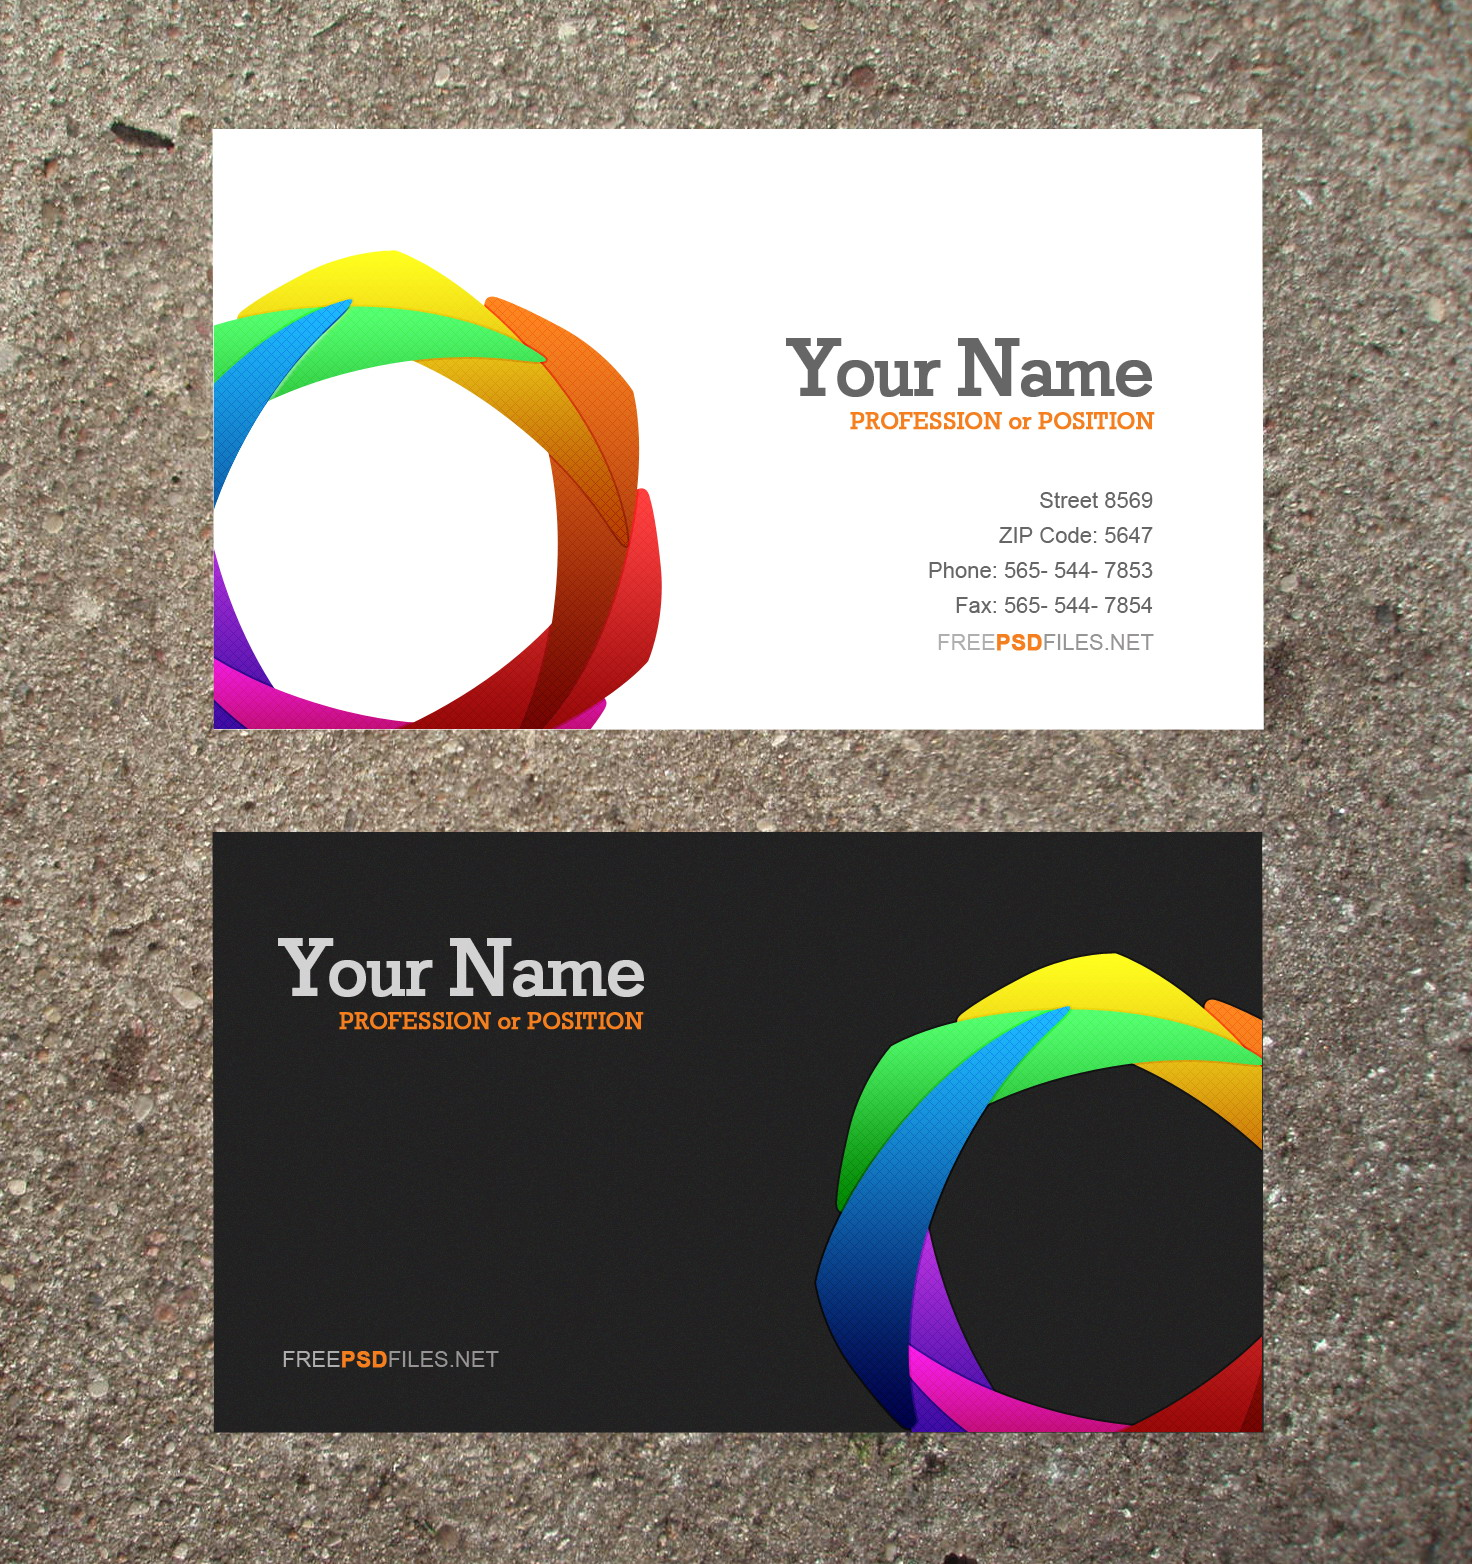 Business card template online robertottni business card template online flashek Image collections